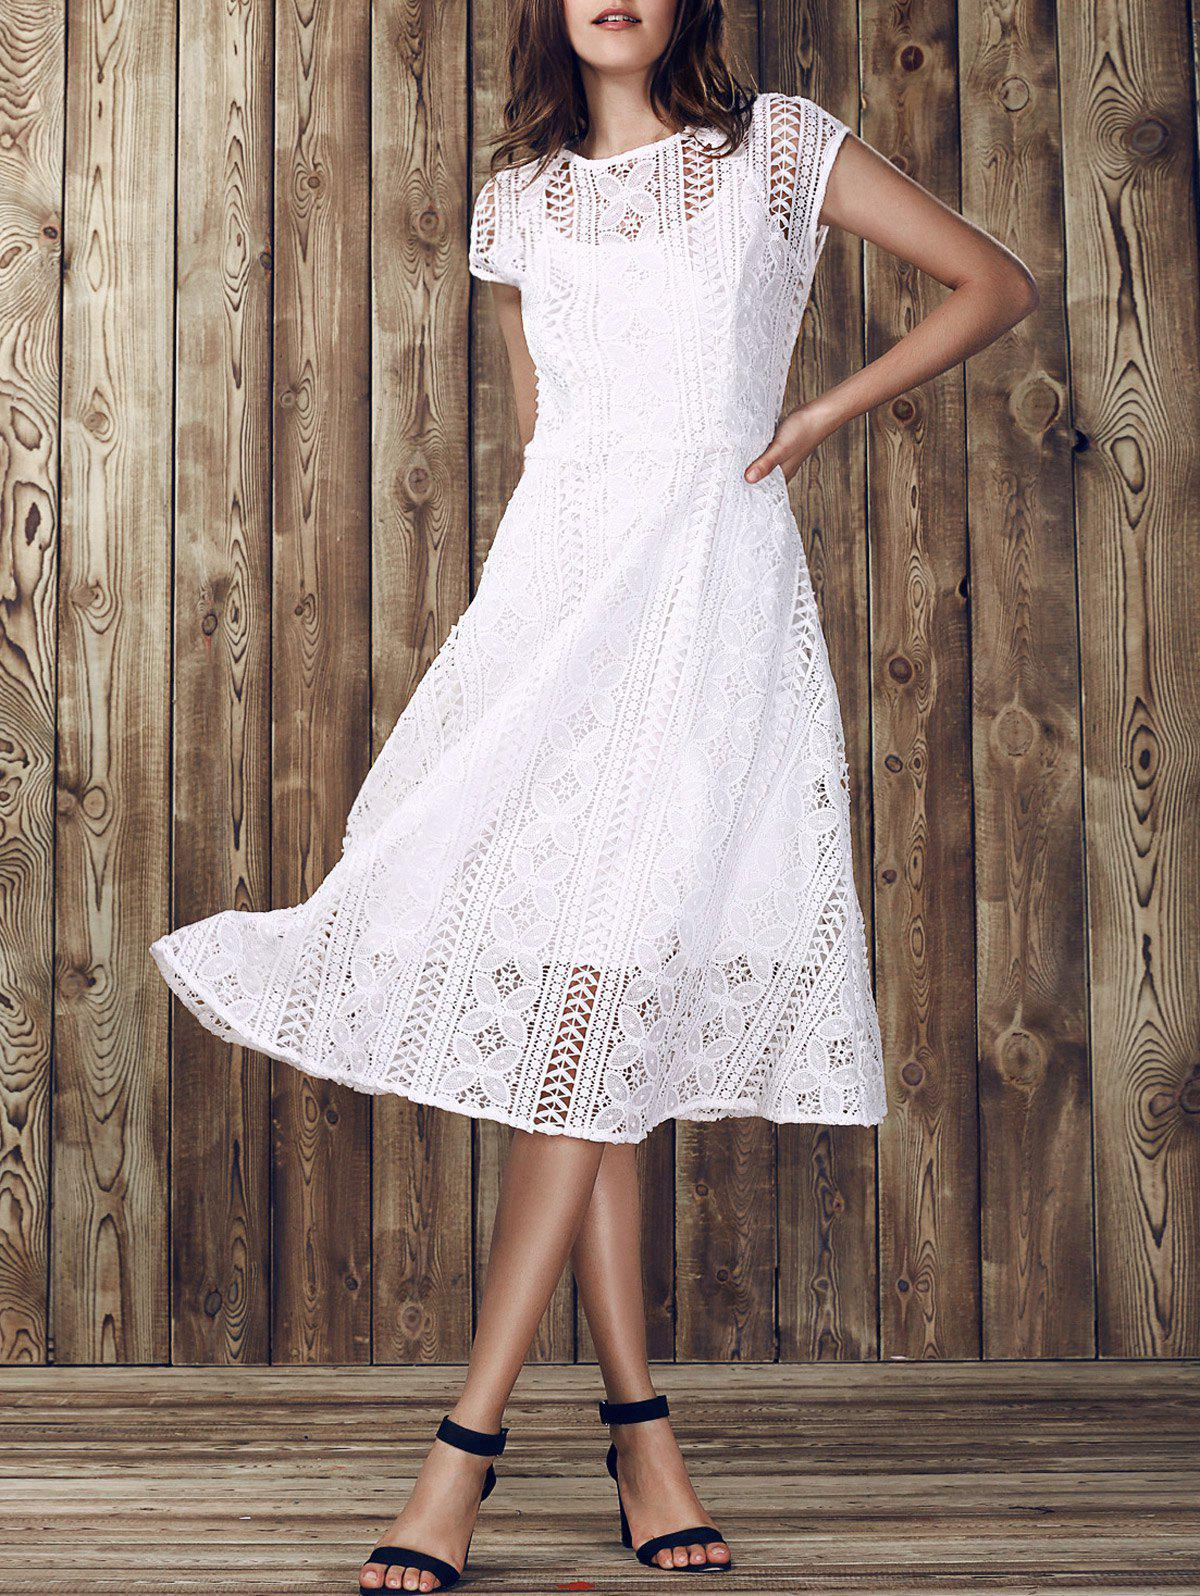 Elegant Women's Round Collar Hollow Out Short Sleeve Lace Dress - WHITE L